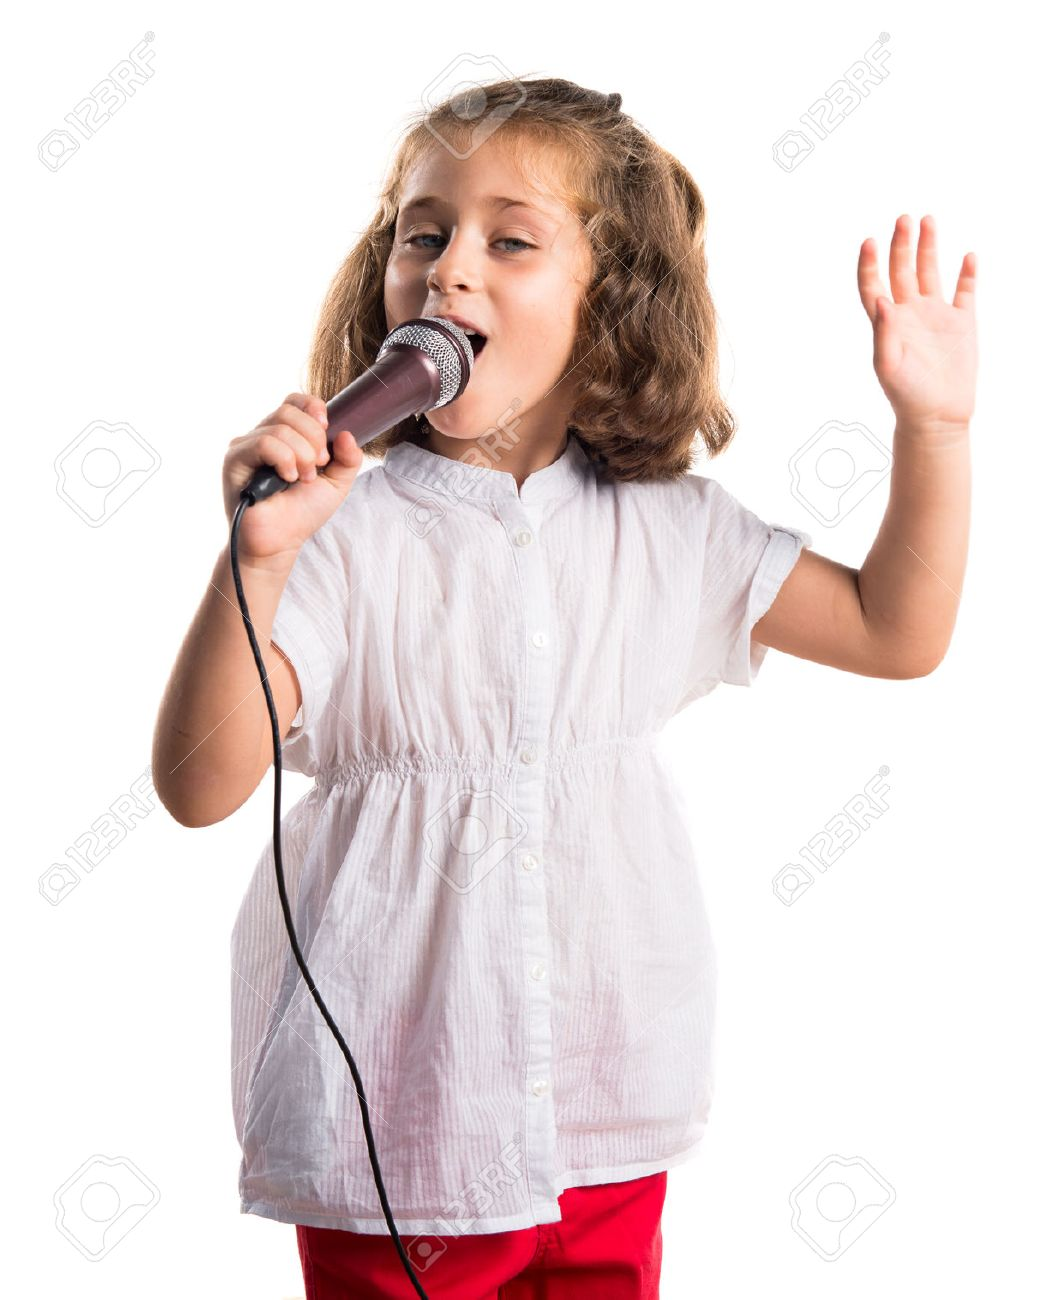 Girl singing with microphone Stock Photo - 48454411